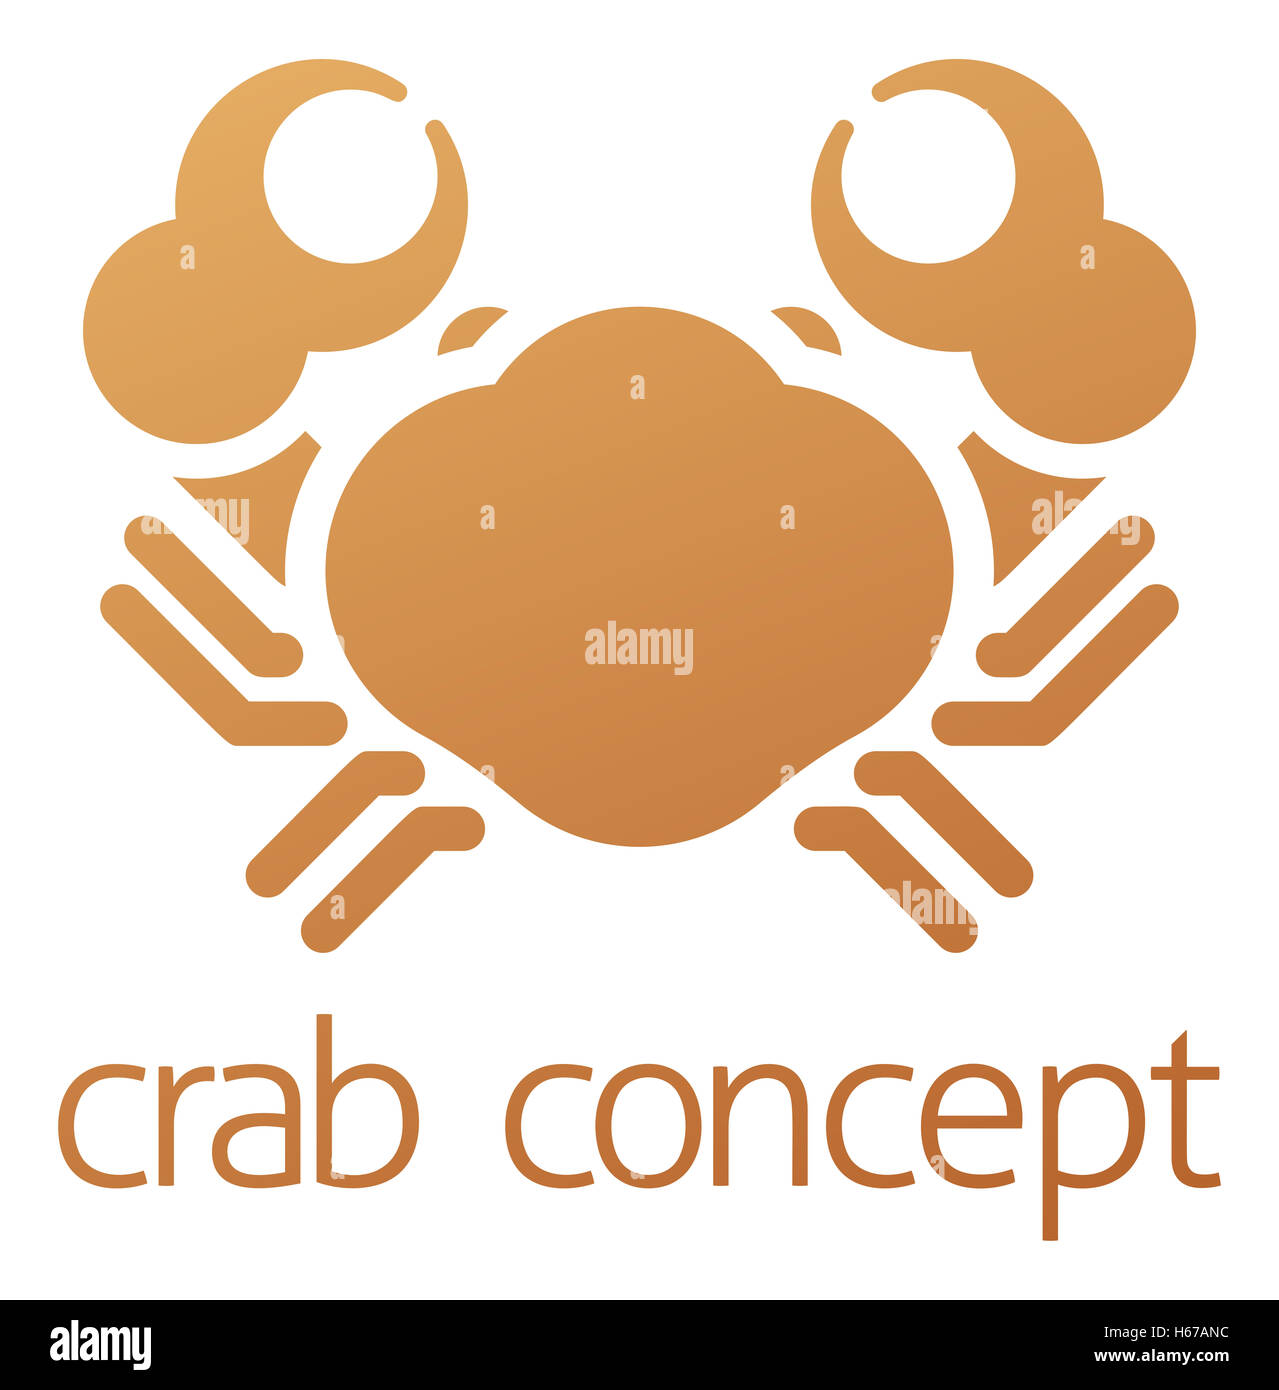 A conceptual illustration of a crab icon with space for text Stock Photo